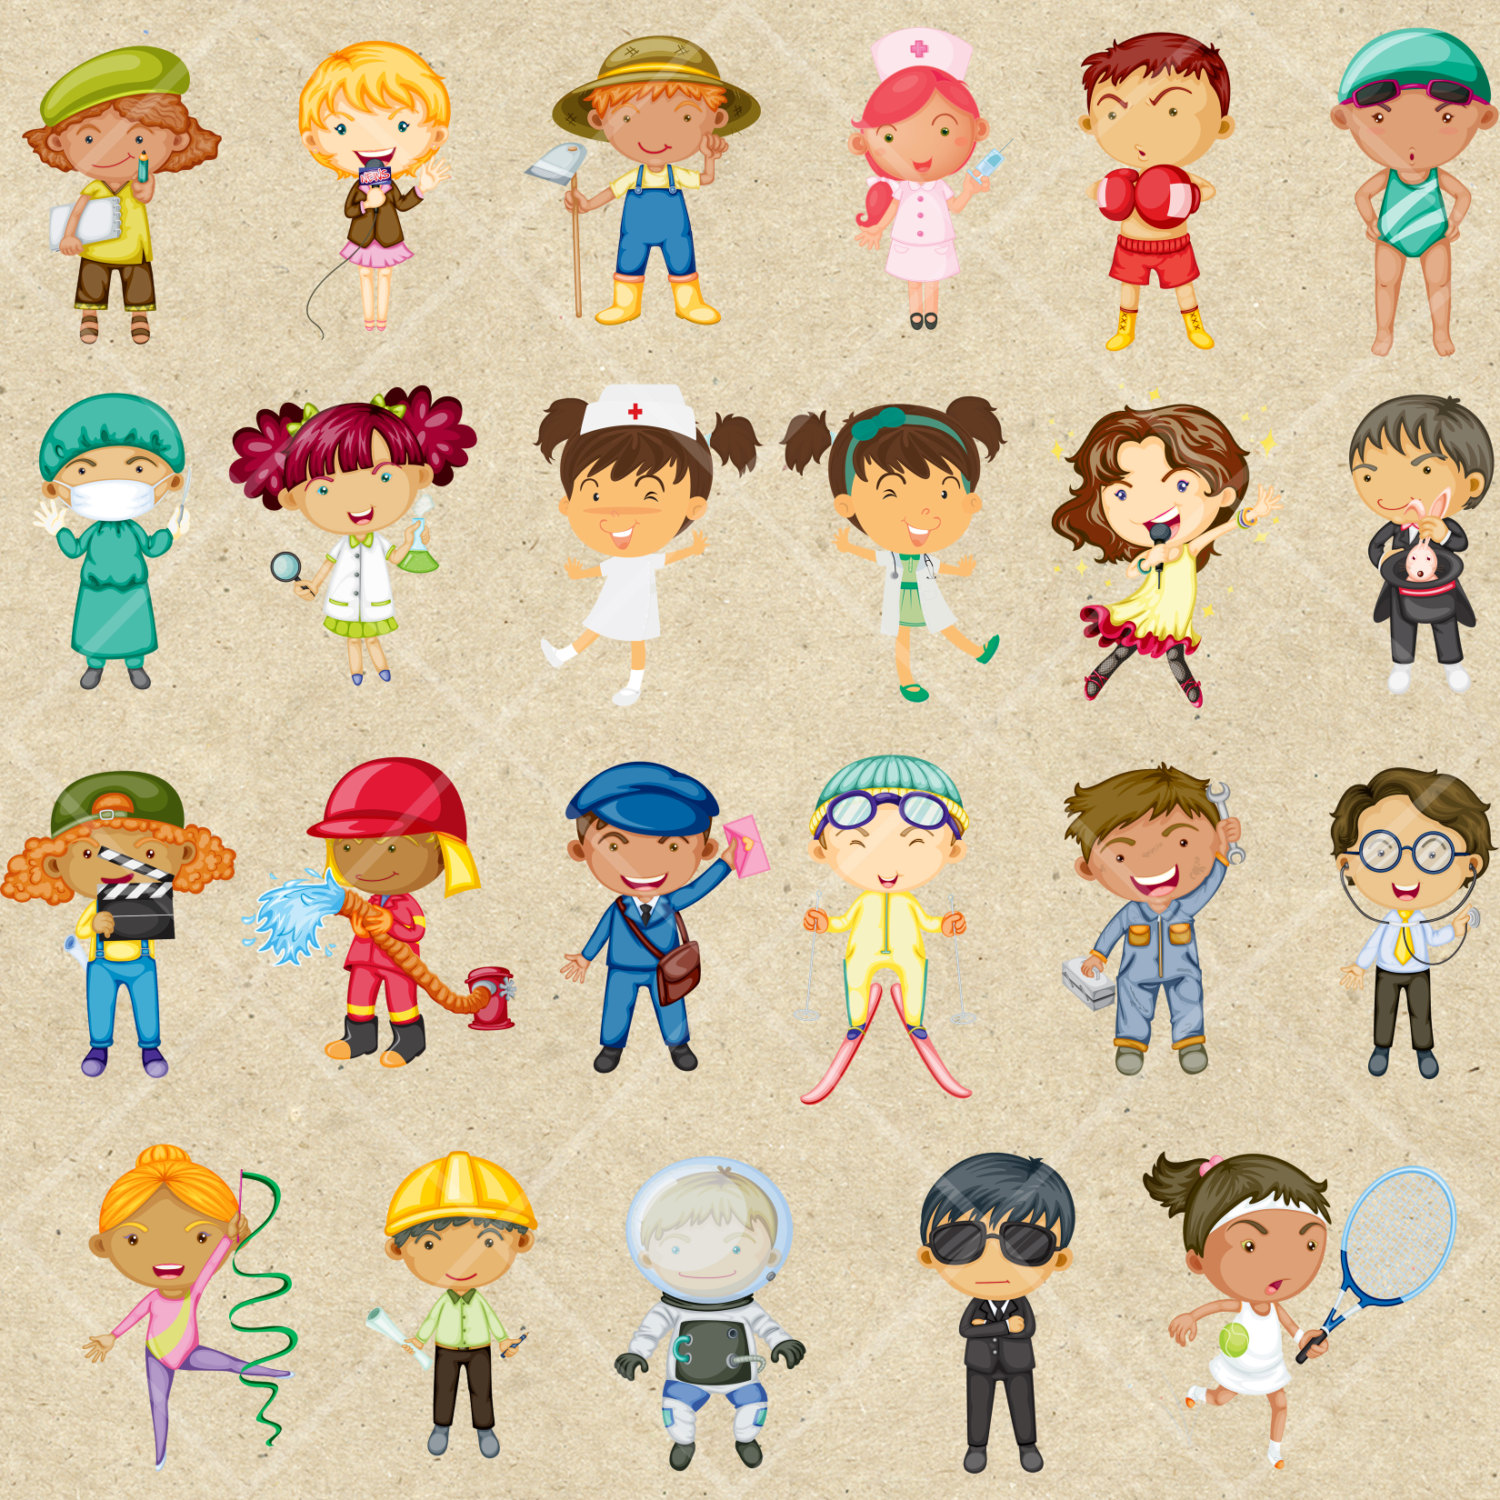 Career pictures clipart graphic library library Careers Clipart | Clipart Panda - Free Clipart Images graphic library library